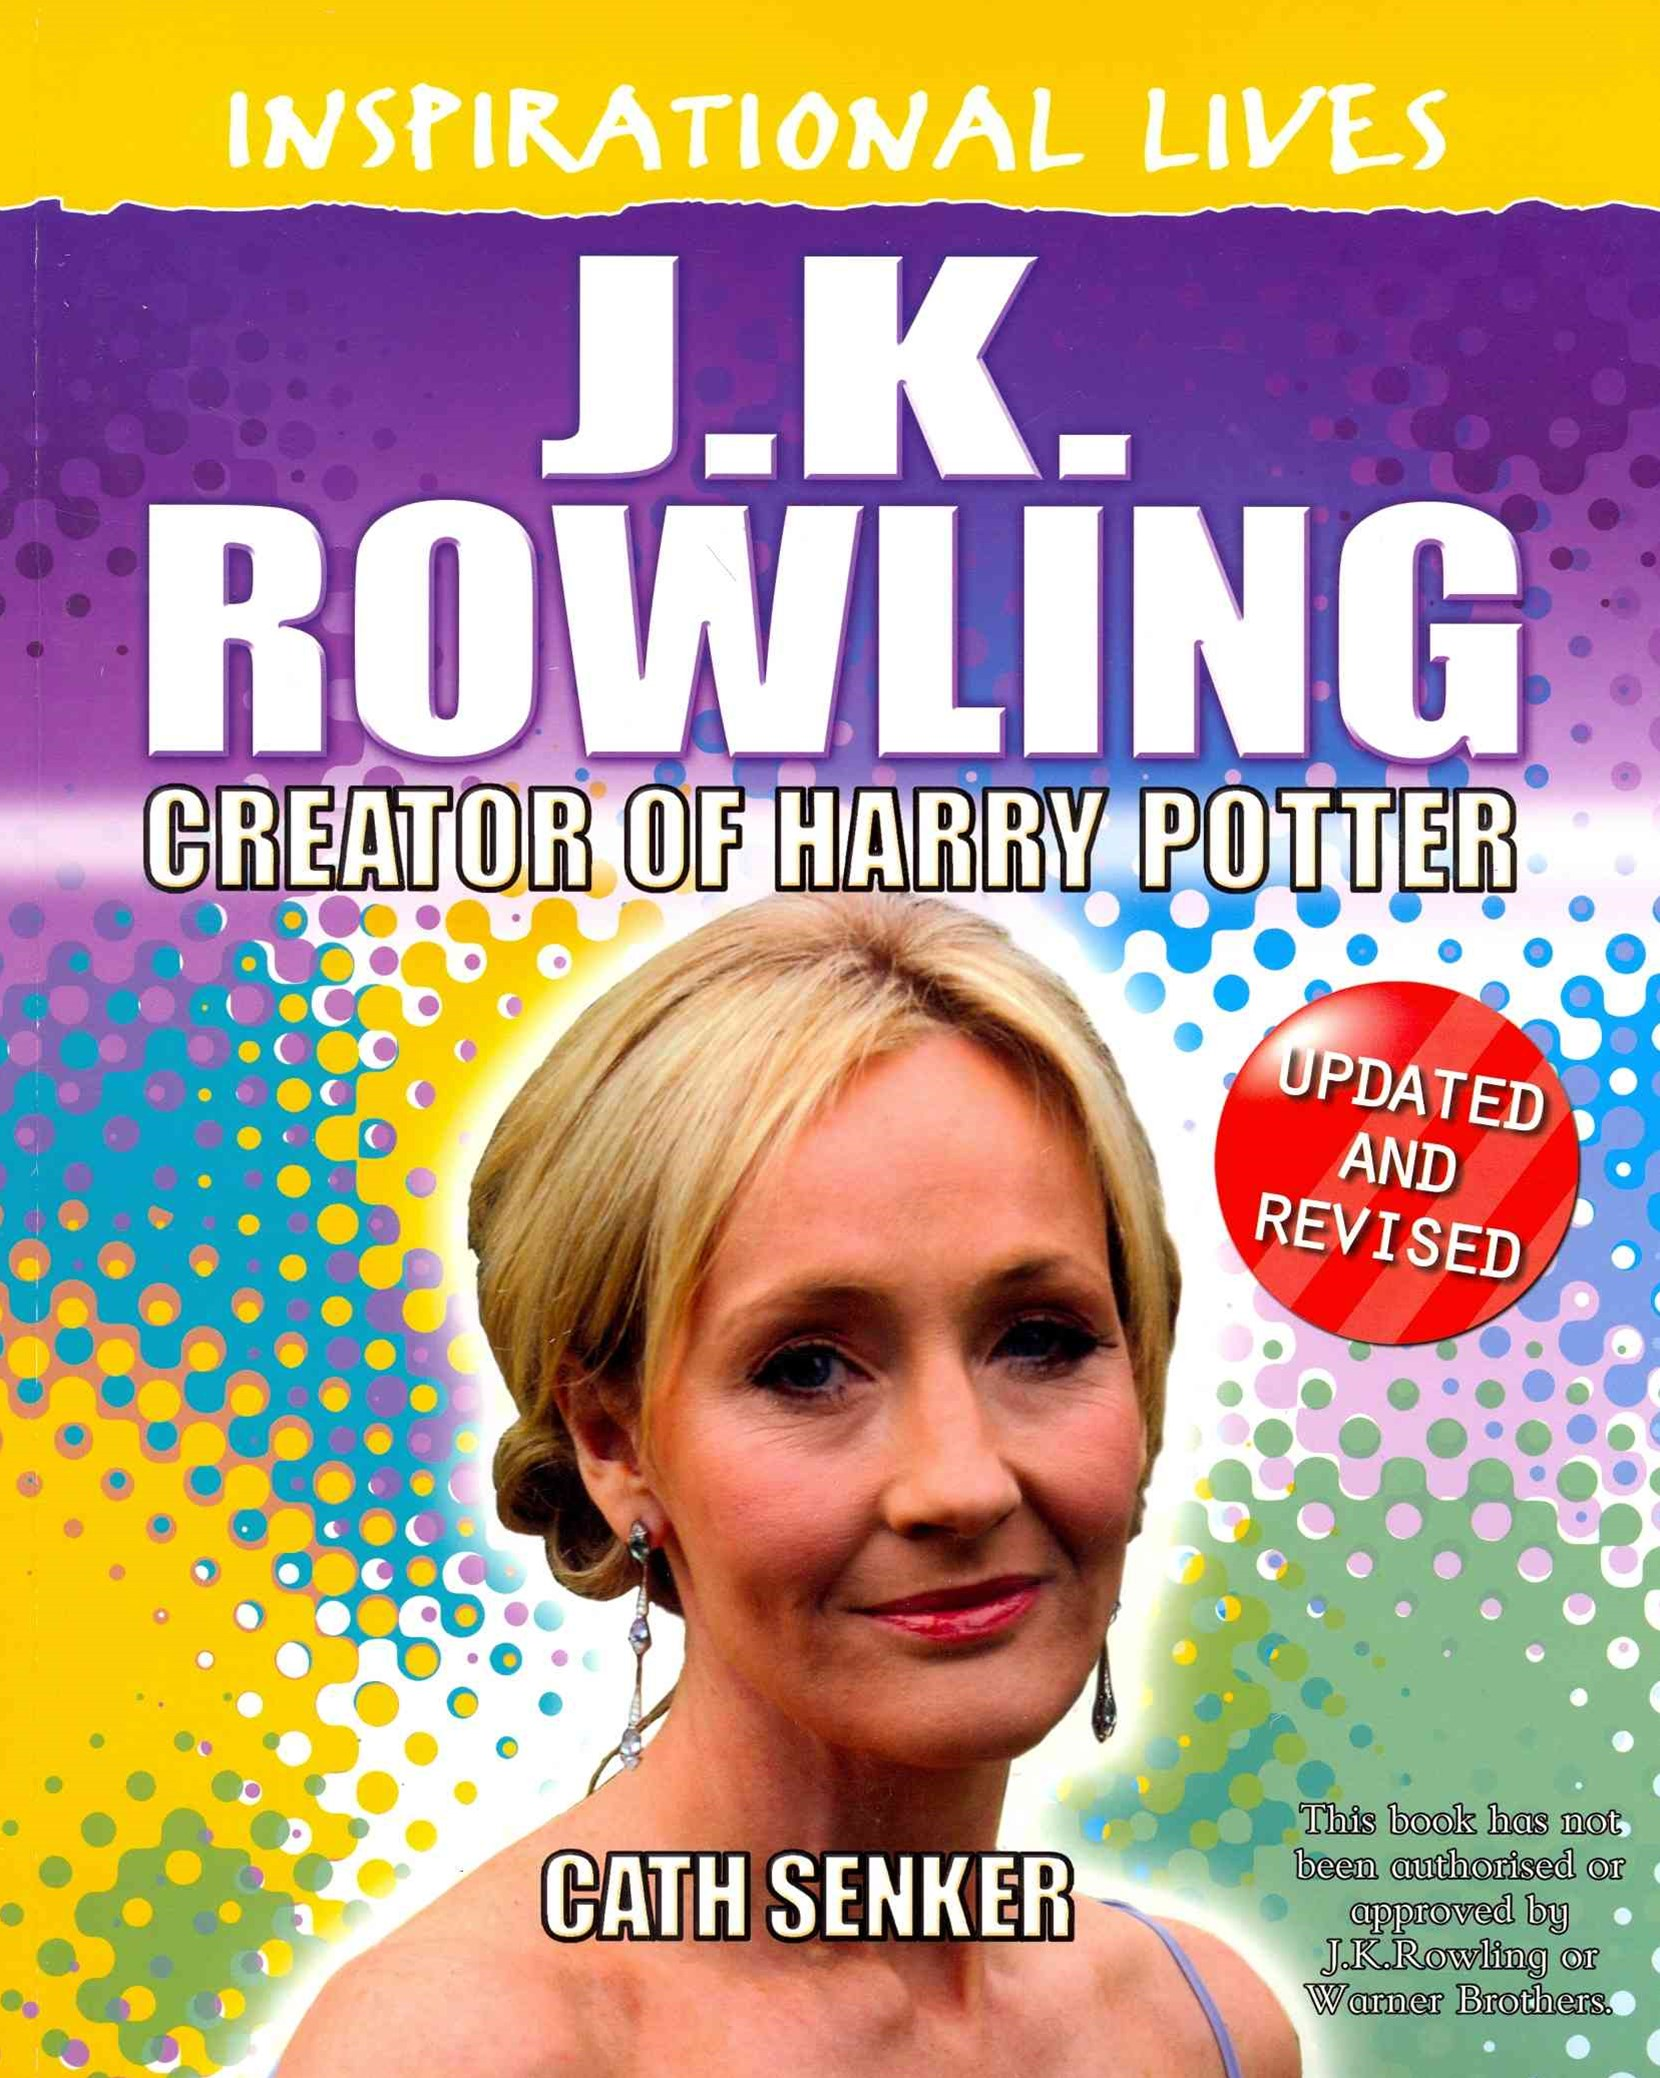 Inspirational Lives: JK Rowling